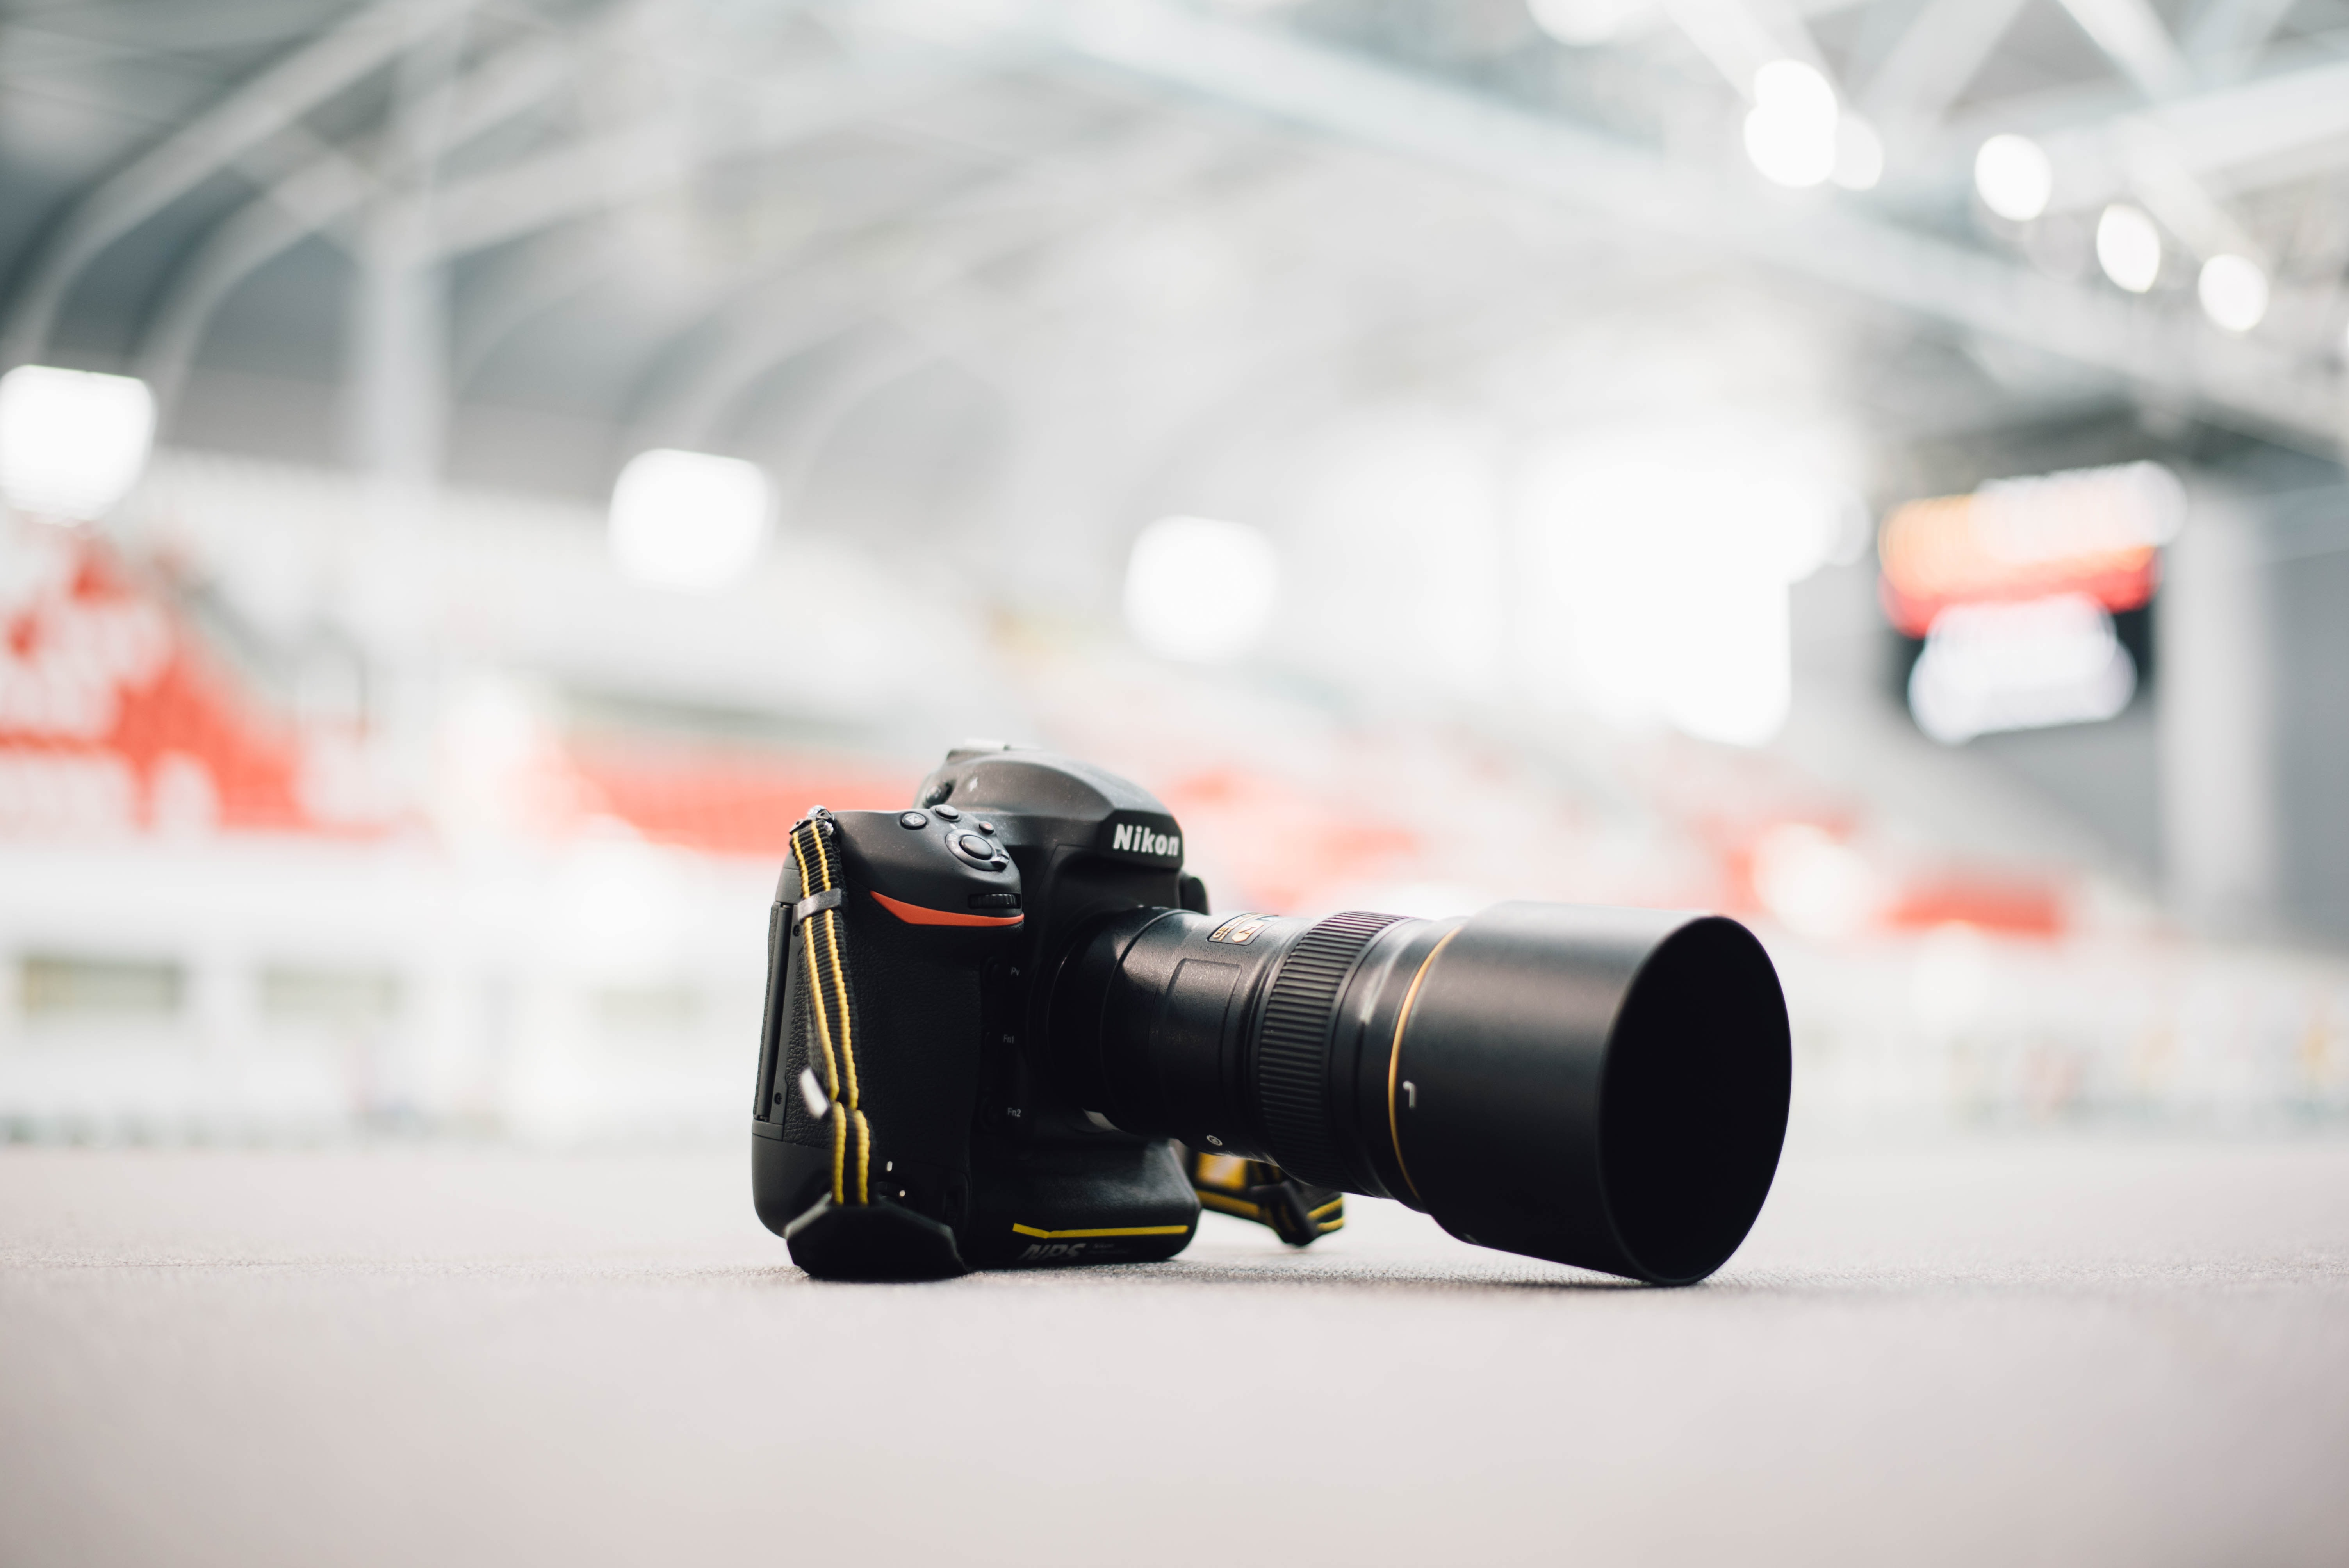 selective focus photography of Nikon DSLR camera on ground